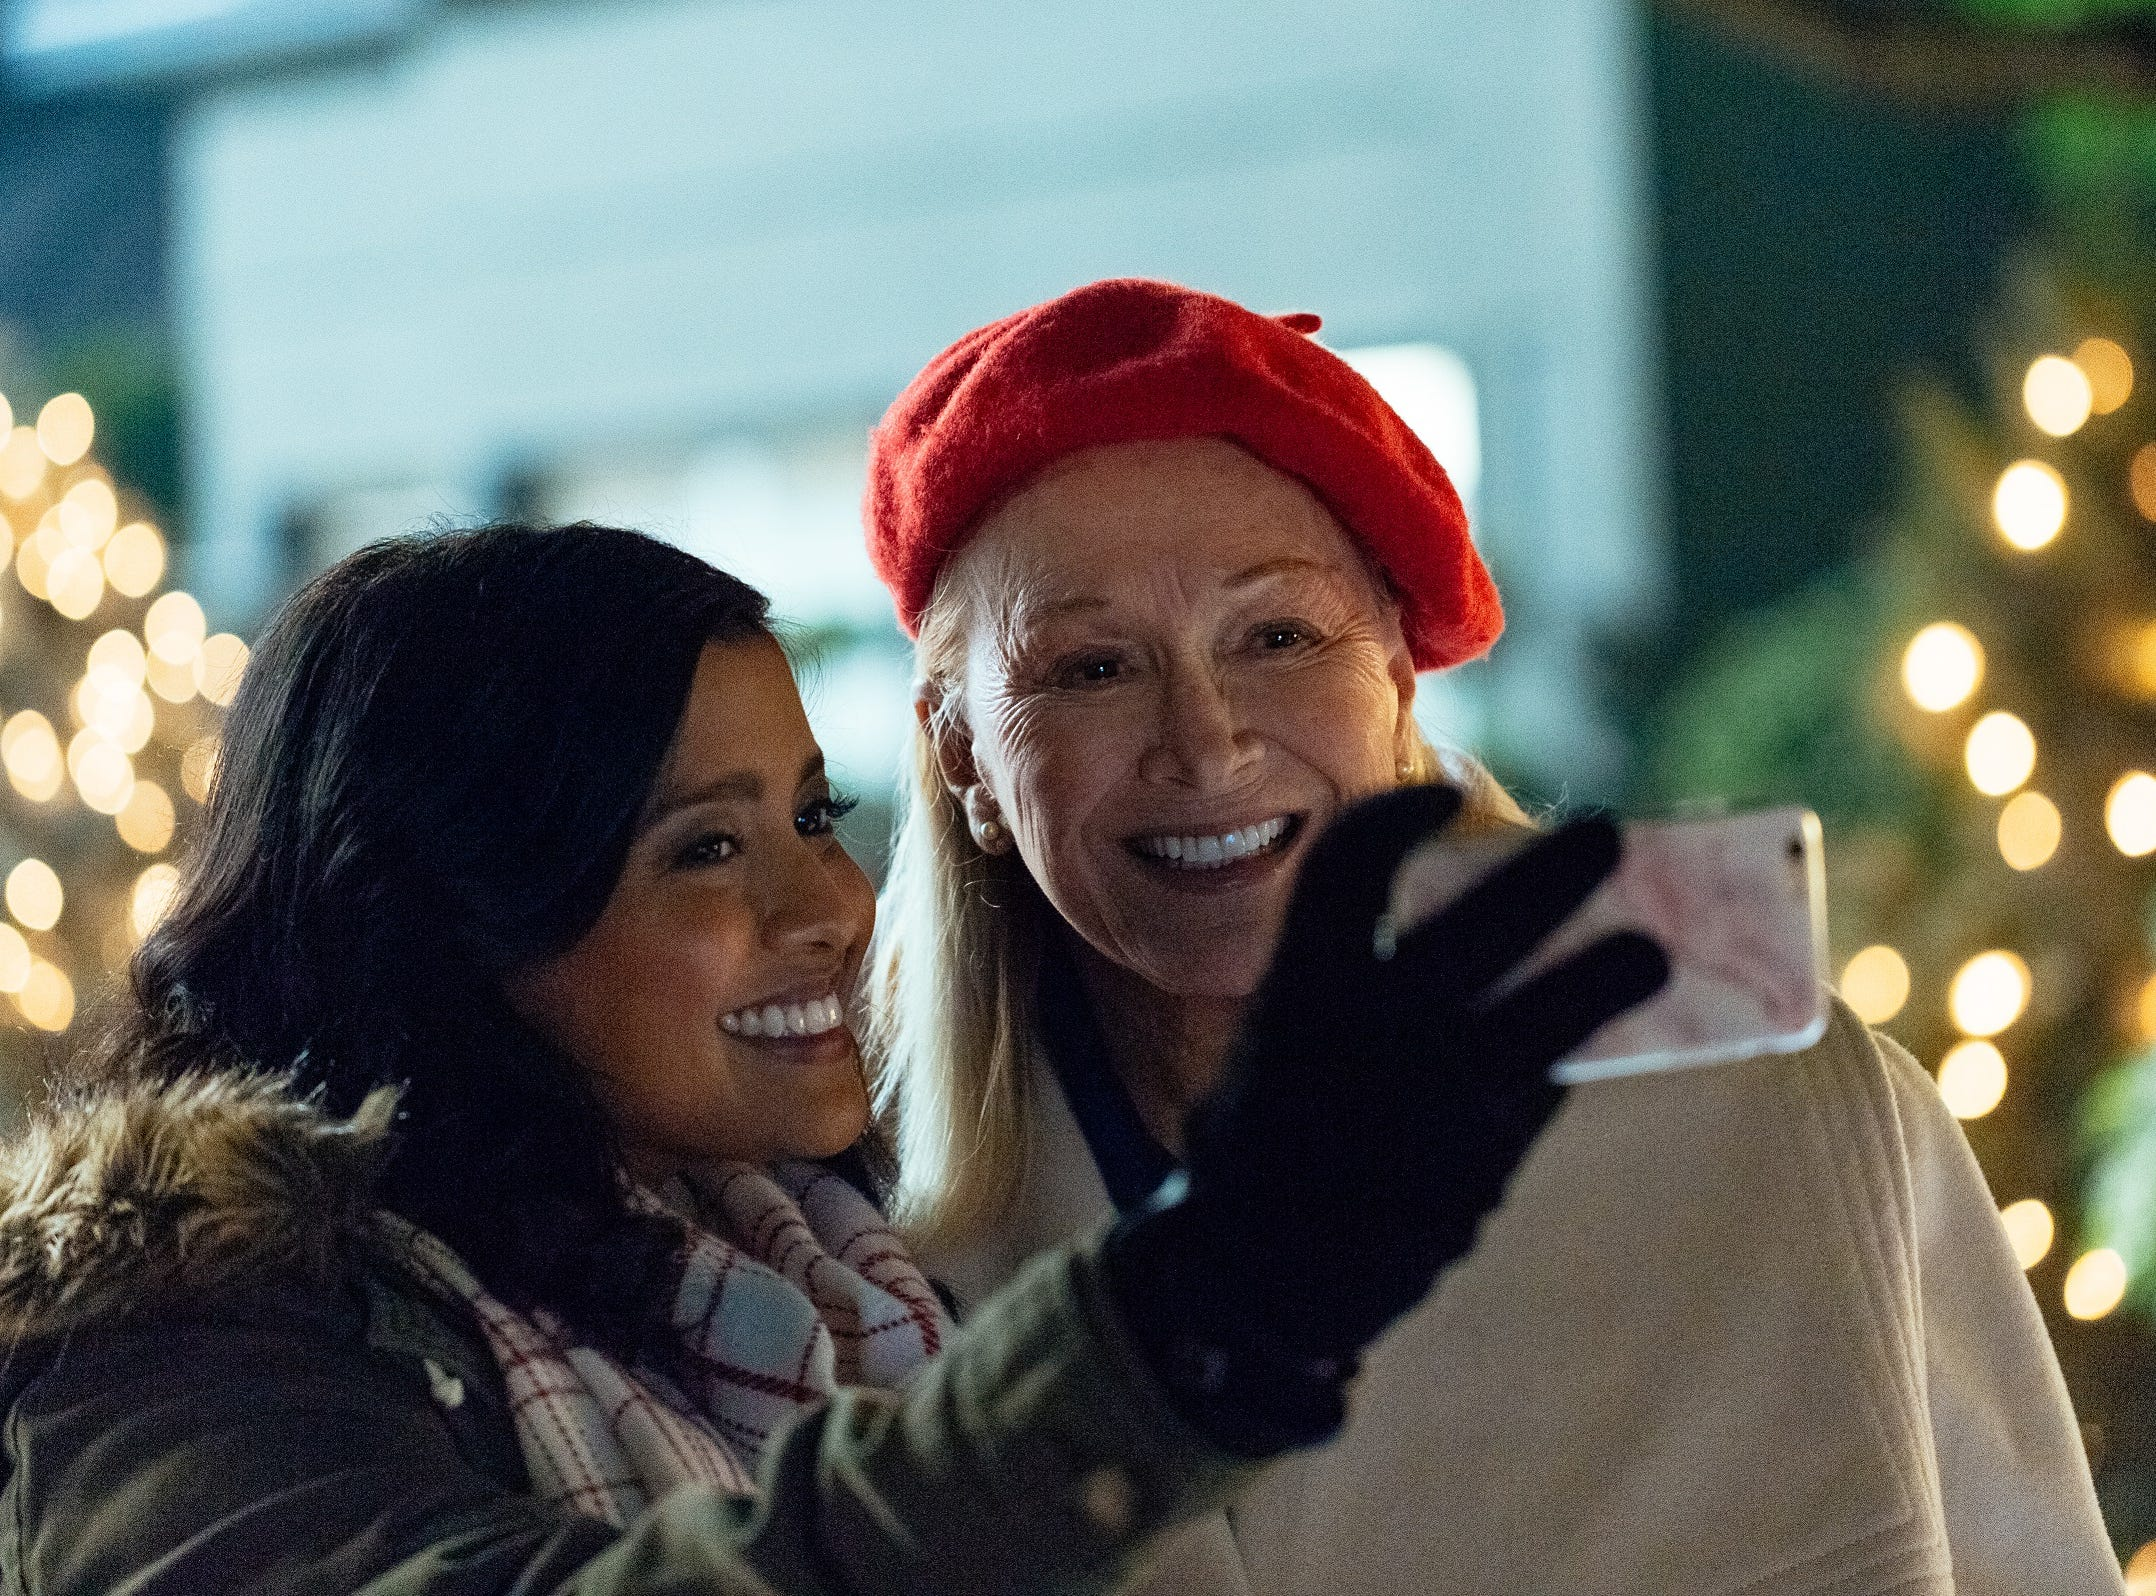 """""""Christmas Lost and Found"""" (Lifetime, Dec. 7, 8 EST/PST): Event planner Whitney Kennison (Tiya Sircar) accidentally throws out a box of ornaments and her grandmother Frances (Diane Ladd) helps her find it."""